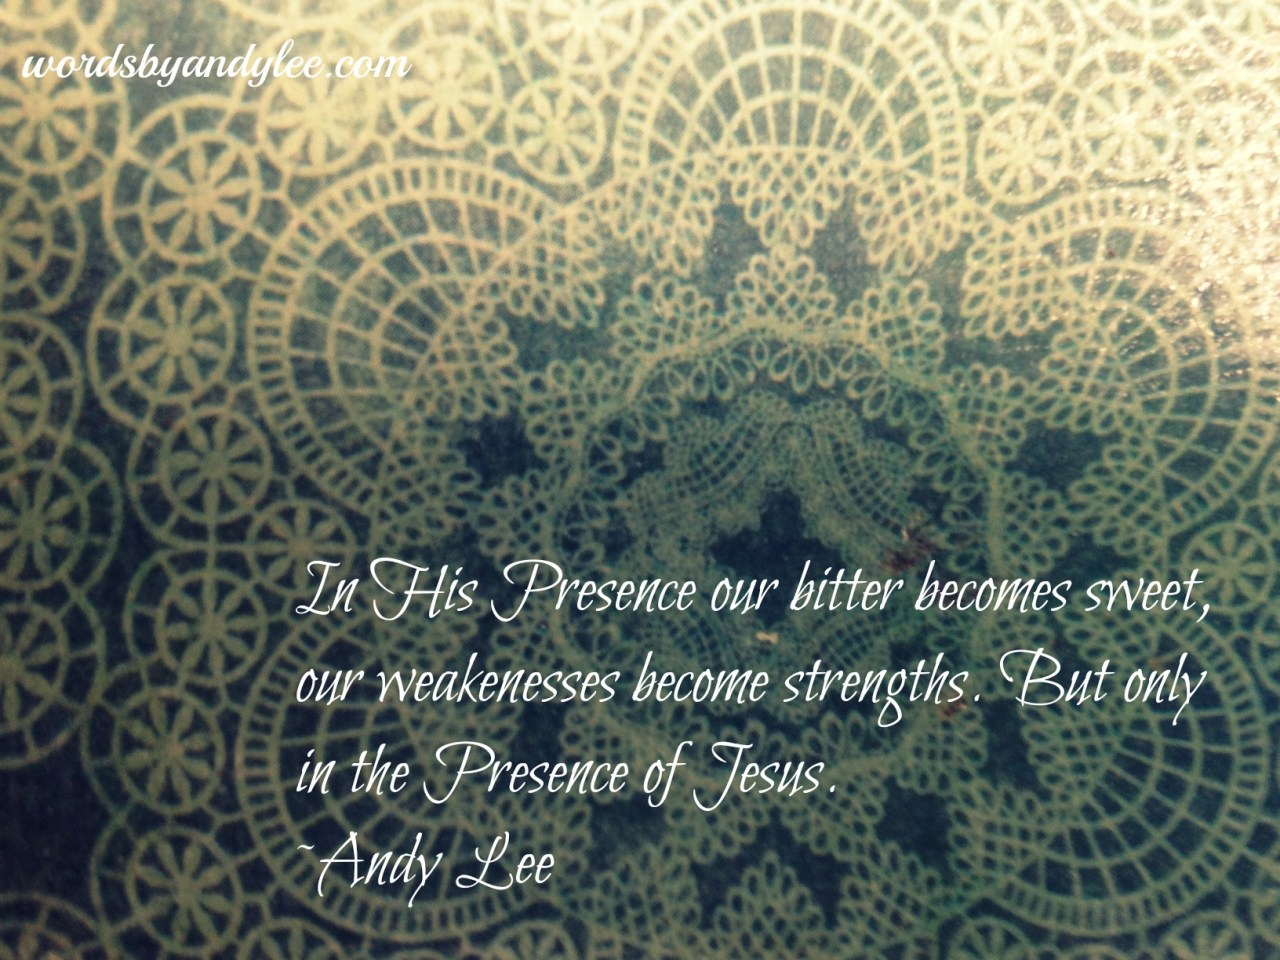 In His Presence quote